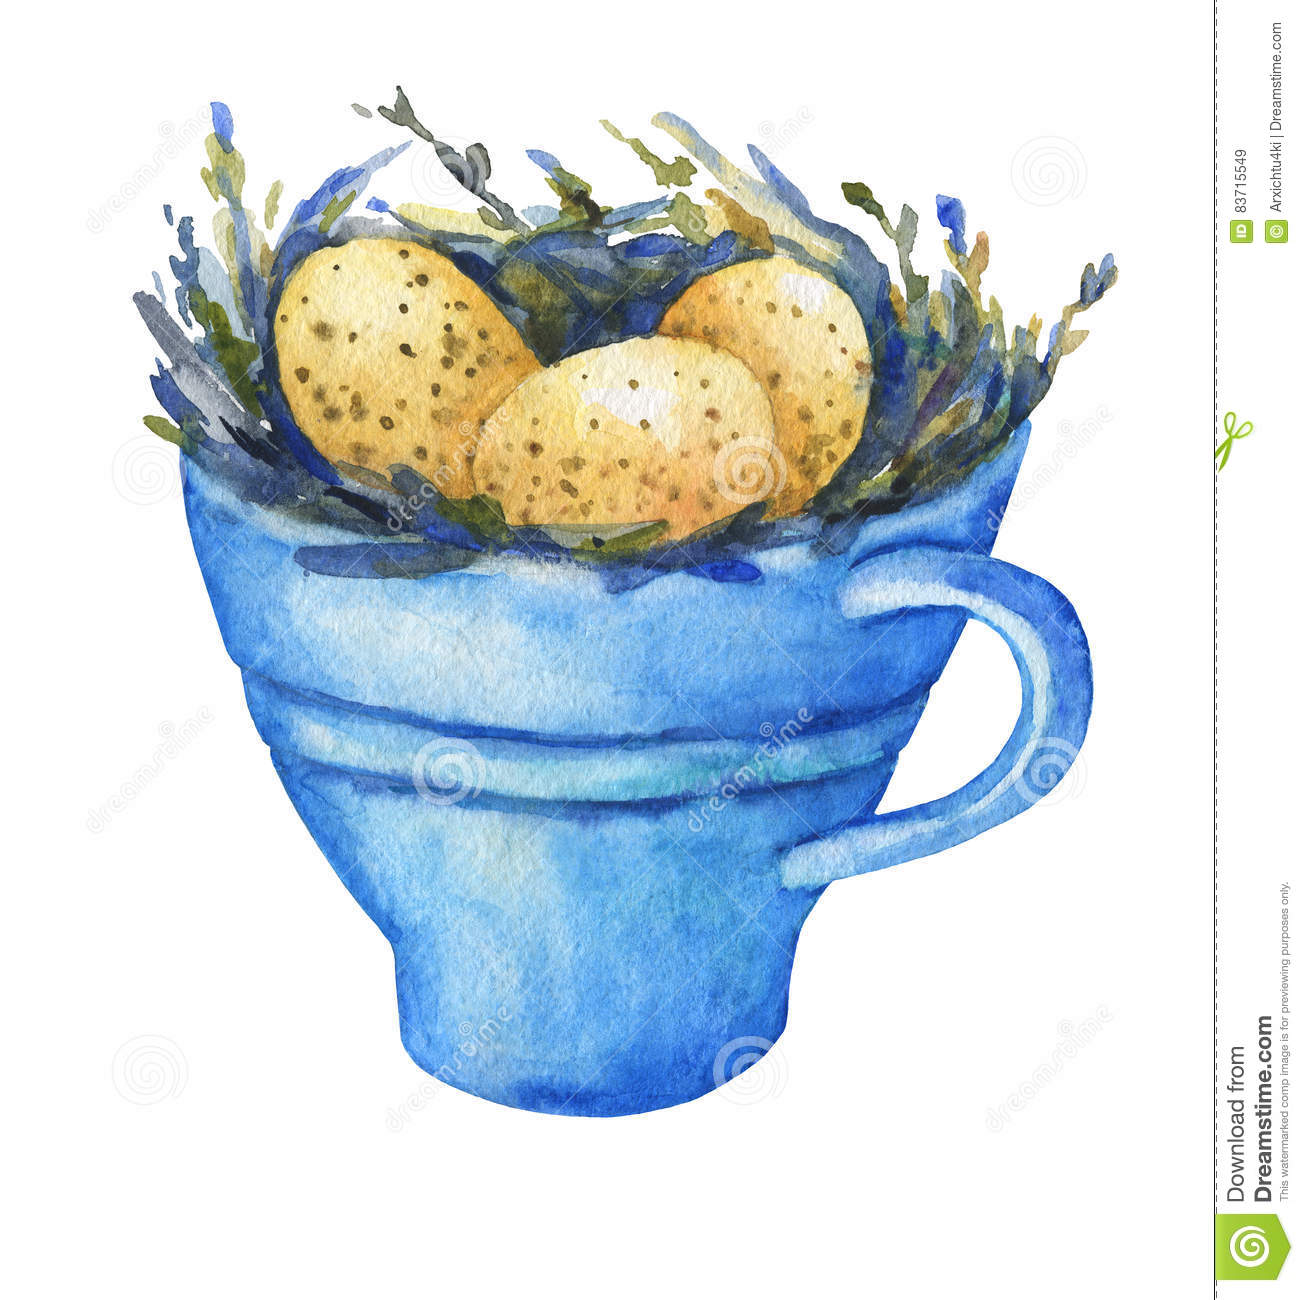 Bird Nest With Yellow Eggs In A Blue Cup, Home Decor For Easter. Stock Illustration